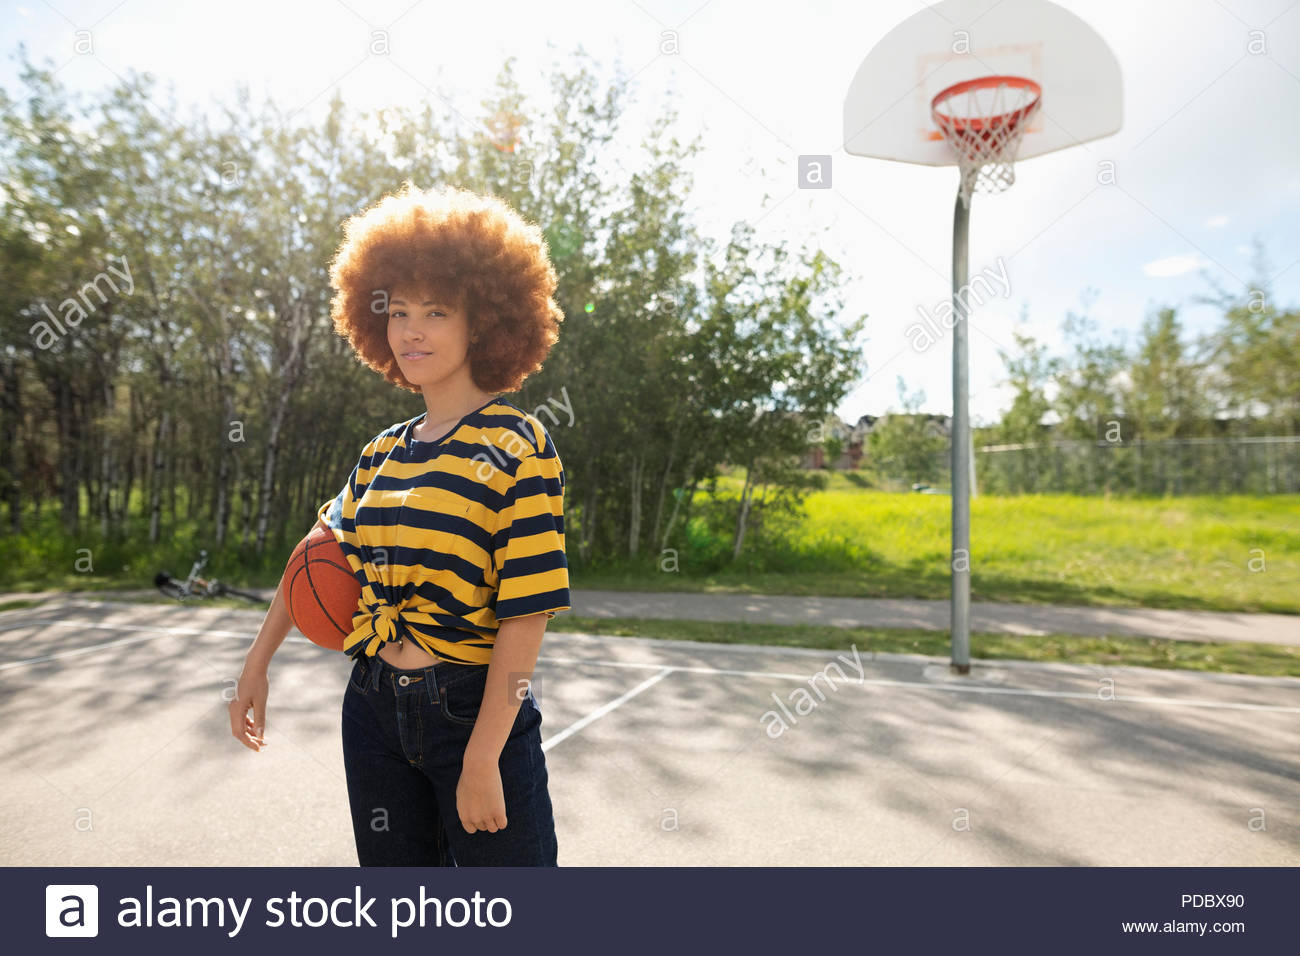 Portrait confident, cool teenage girl with afro playing basketball at park basketball court - Stock Image